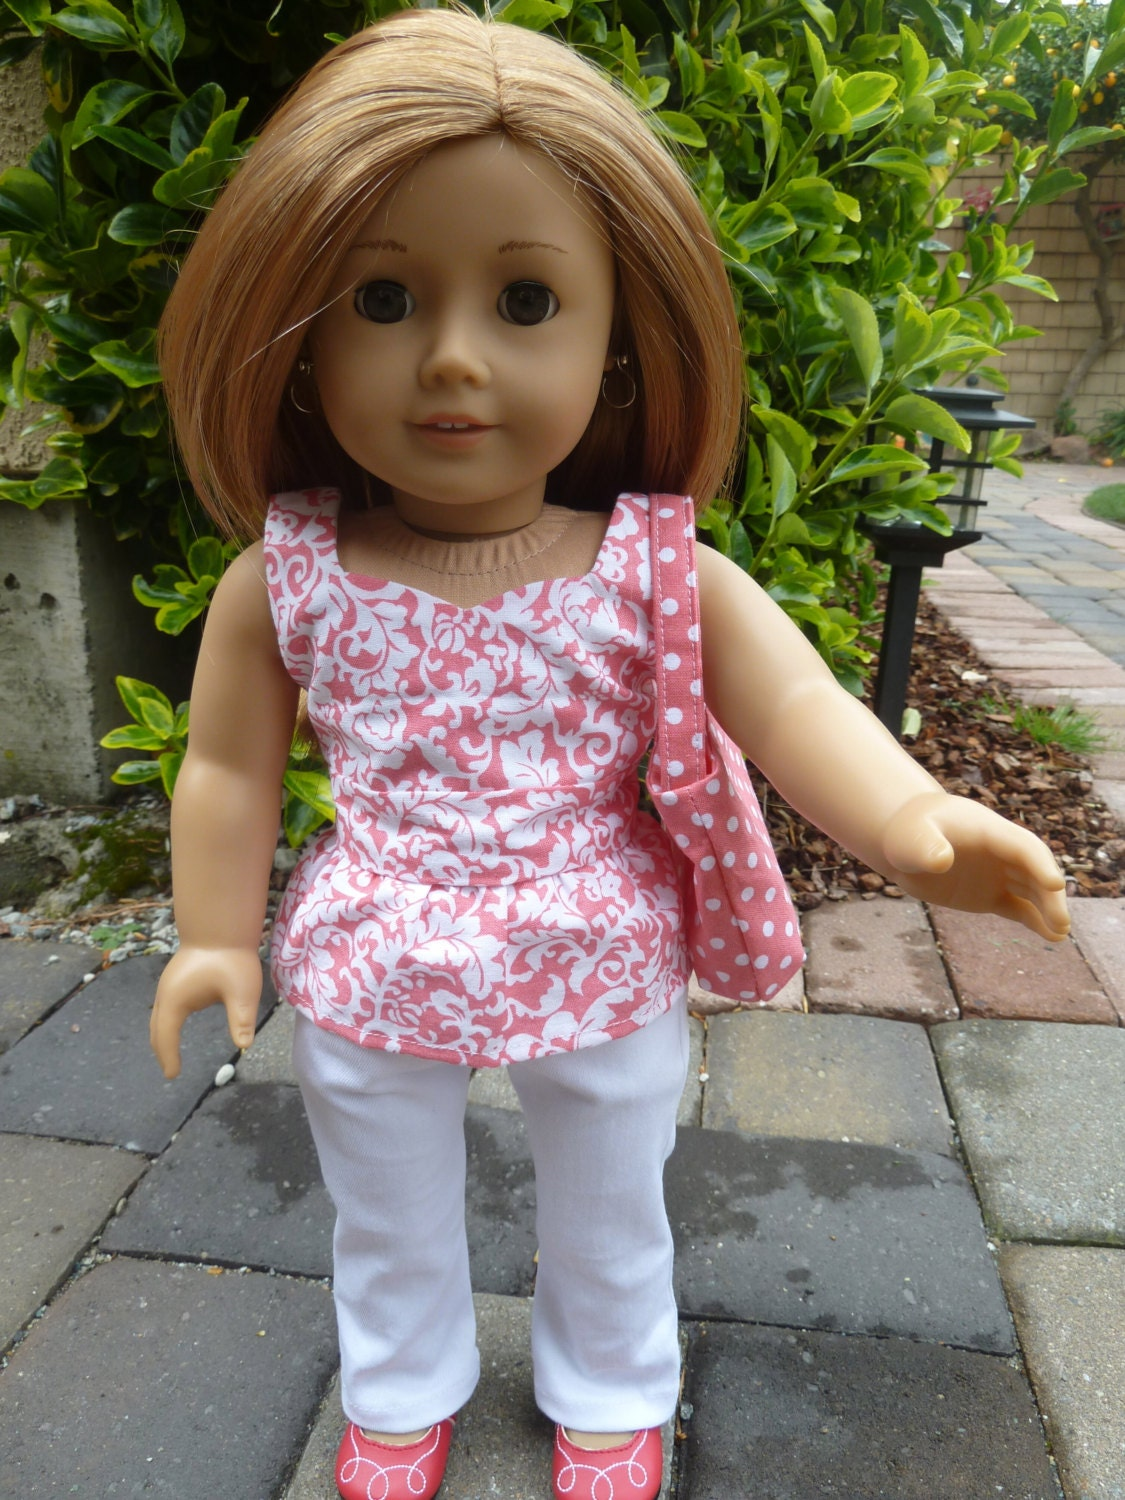 American Girl Doll Clothes - Polka Dots and Swirls, Too 3 piece outfit includes jeans, peplum top and purse